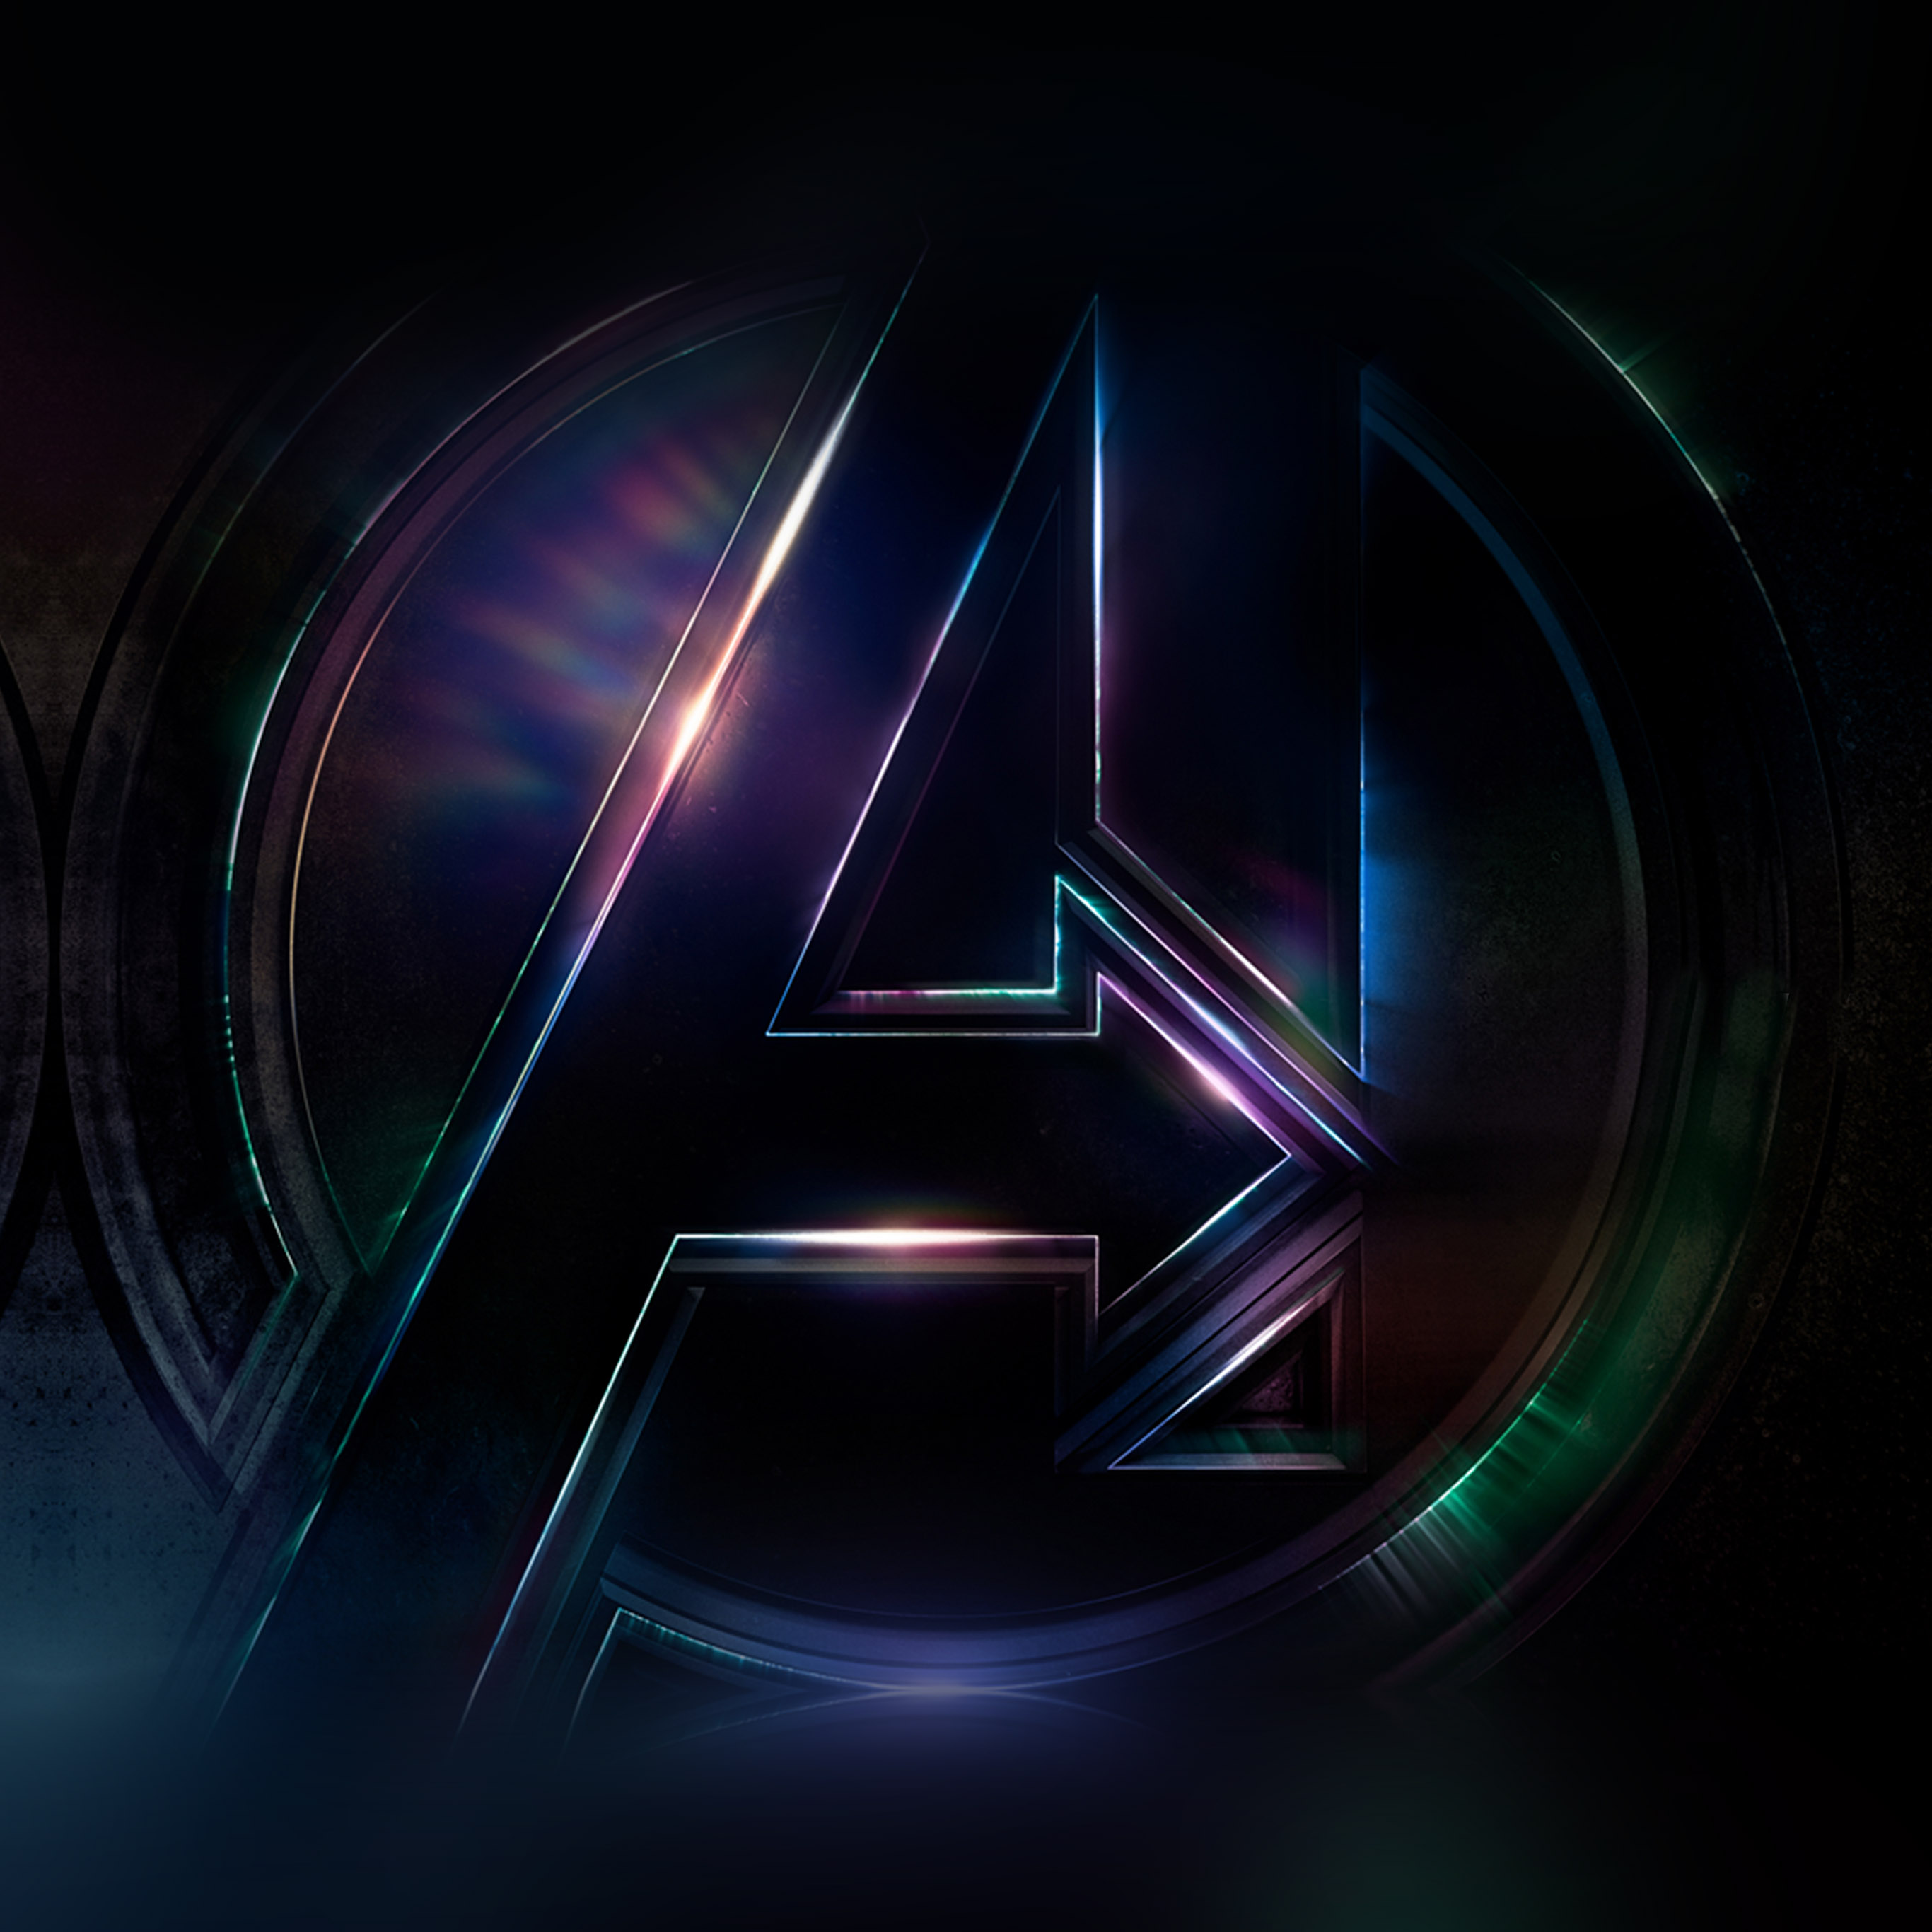 Galaxy S5 Fall Wallpaper Papers Co Android Wallpaper Be49 Avengers Logo Dark